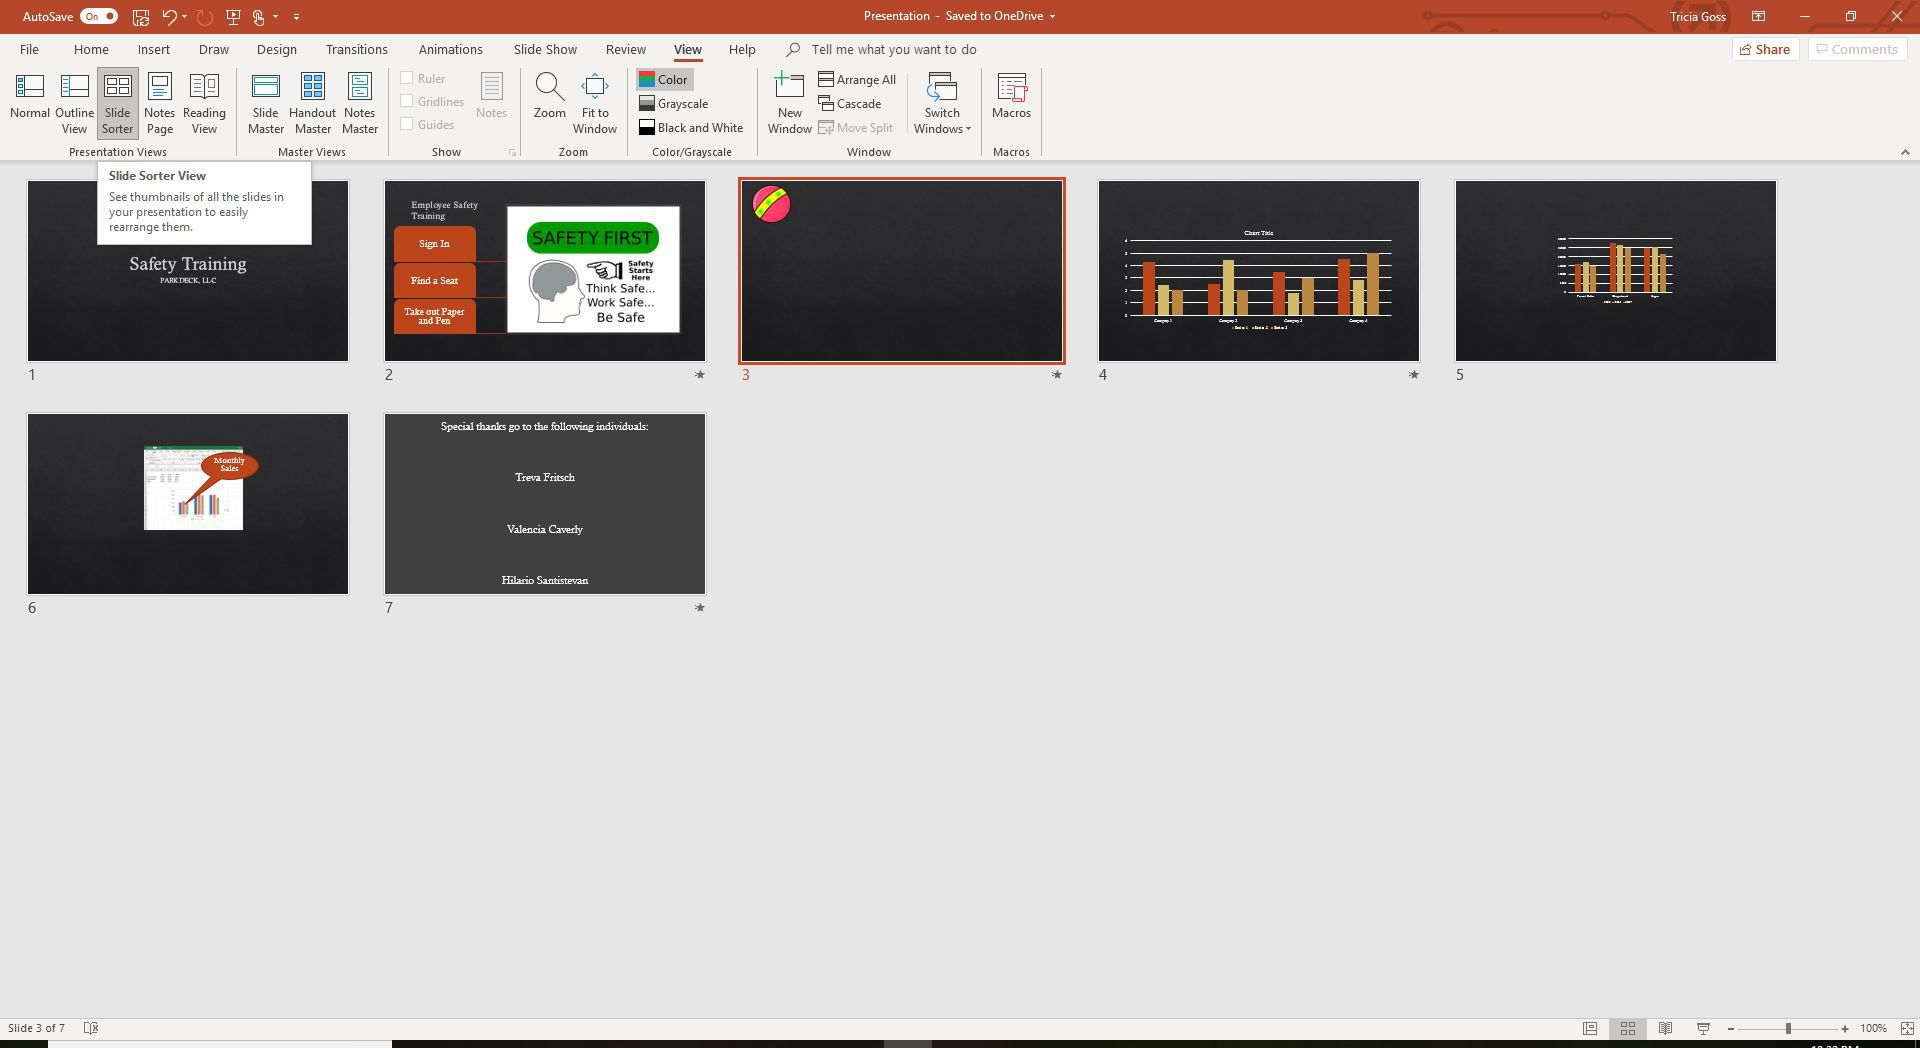 A screenshot of the Slide Sorter view in PowerPoint.